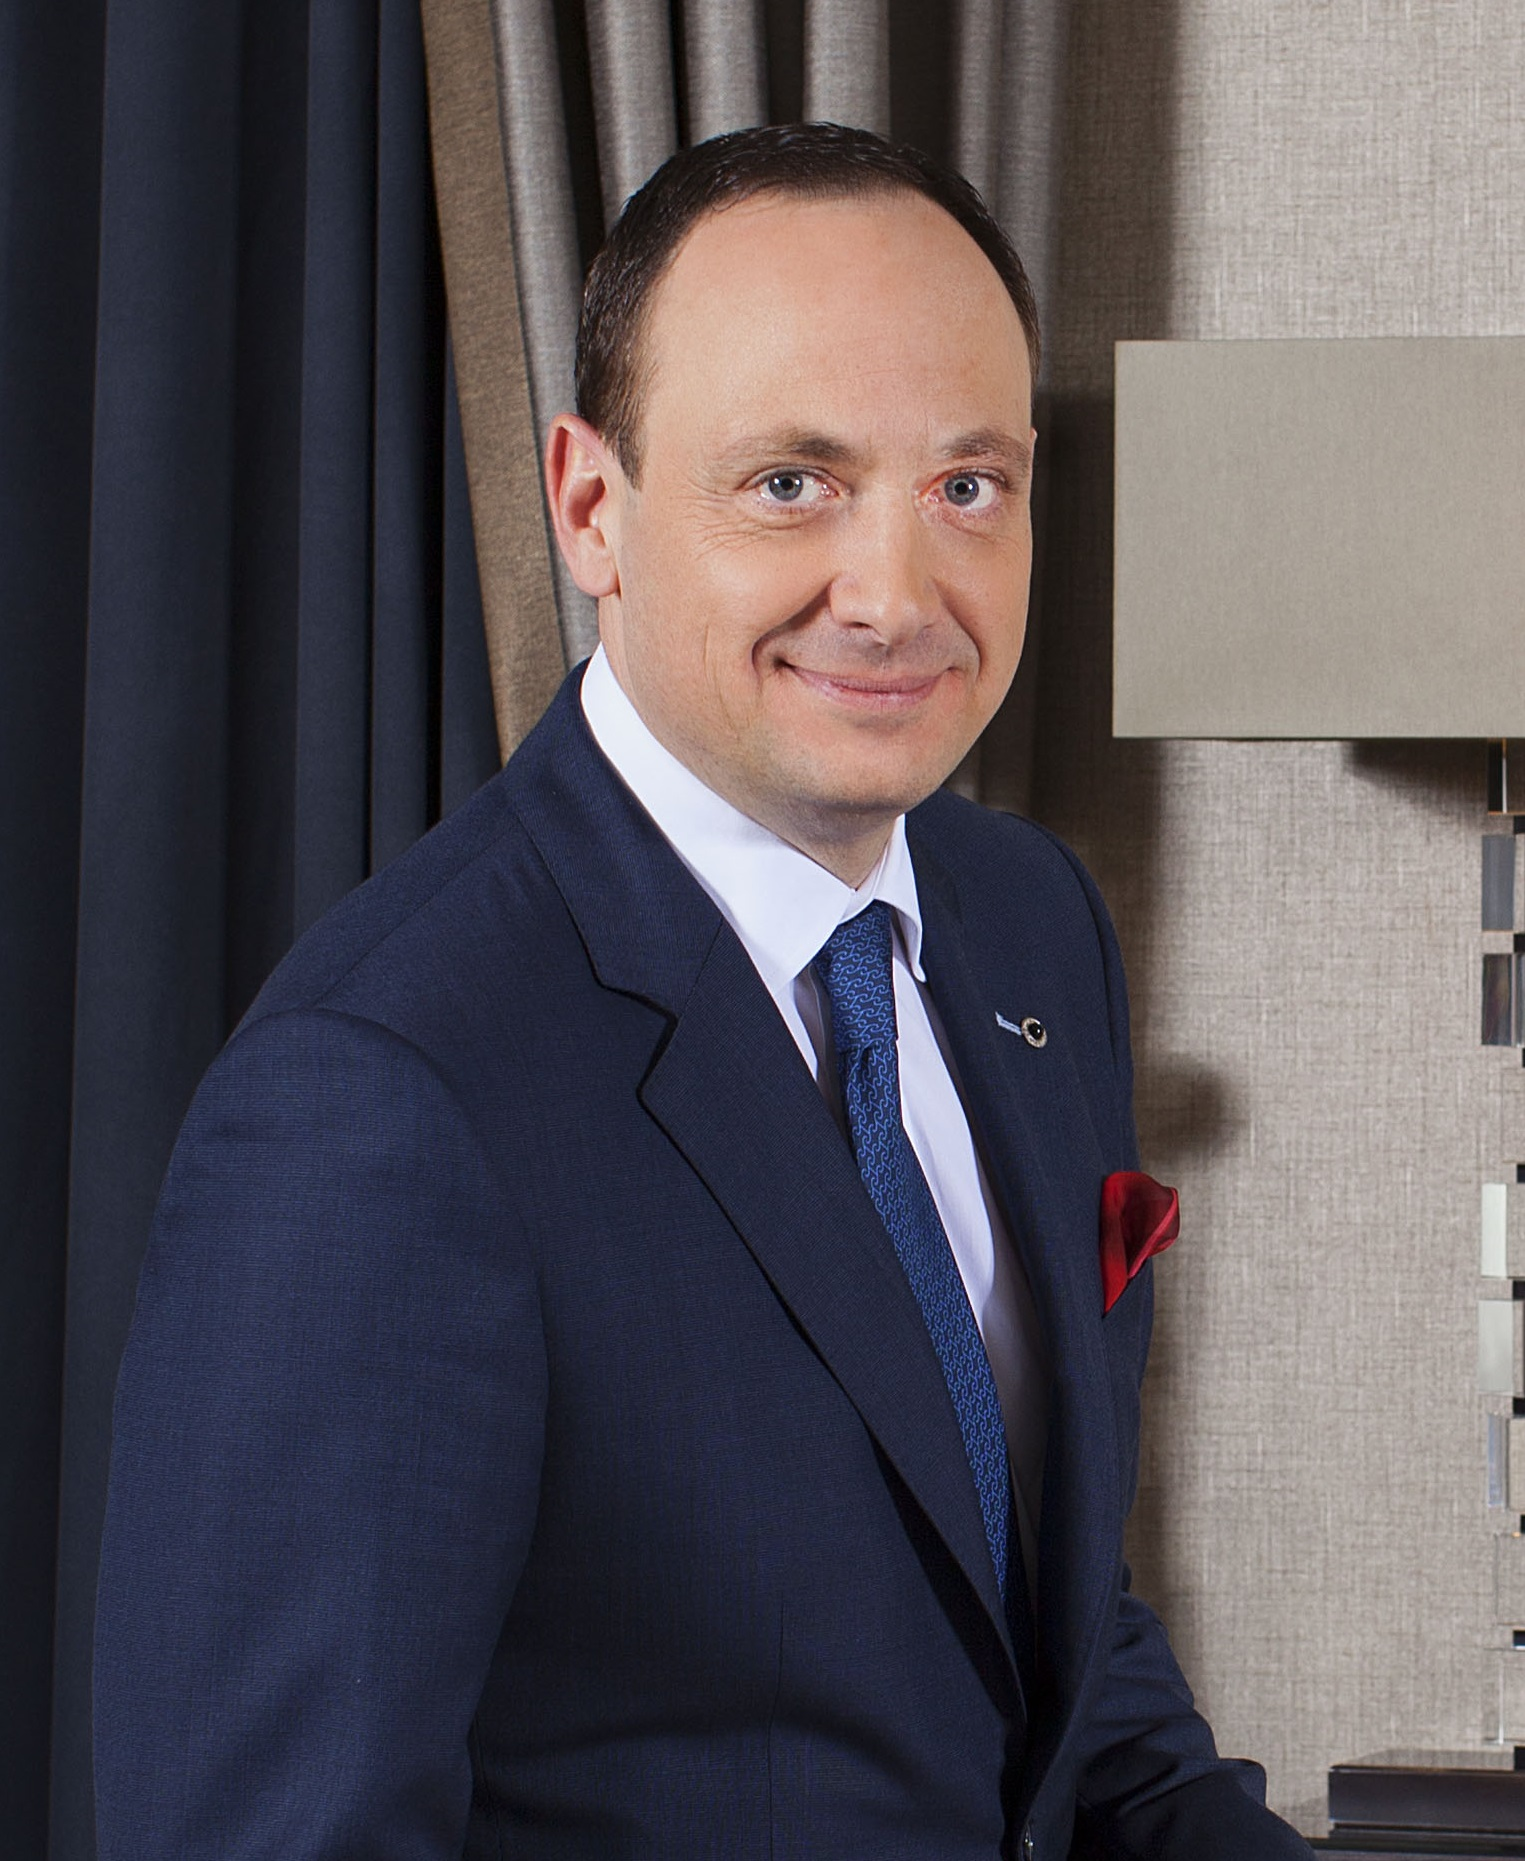 Moritz Klein has been appointed General Manager at ...